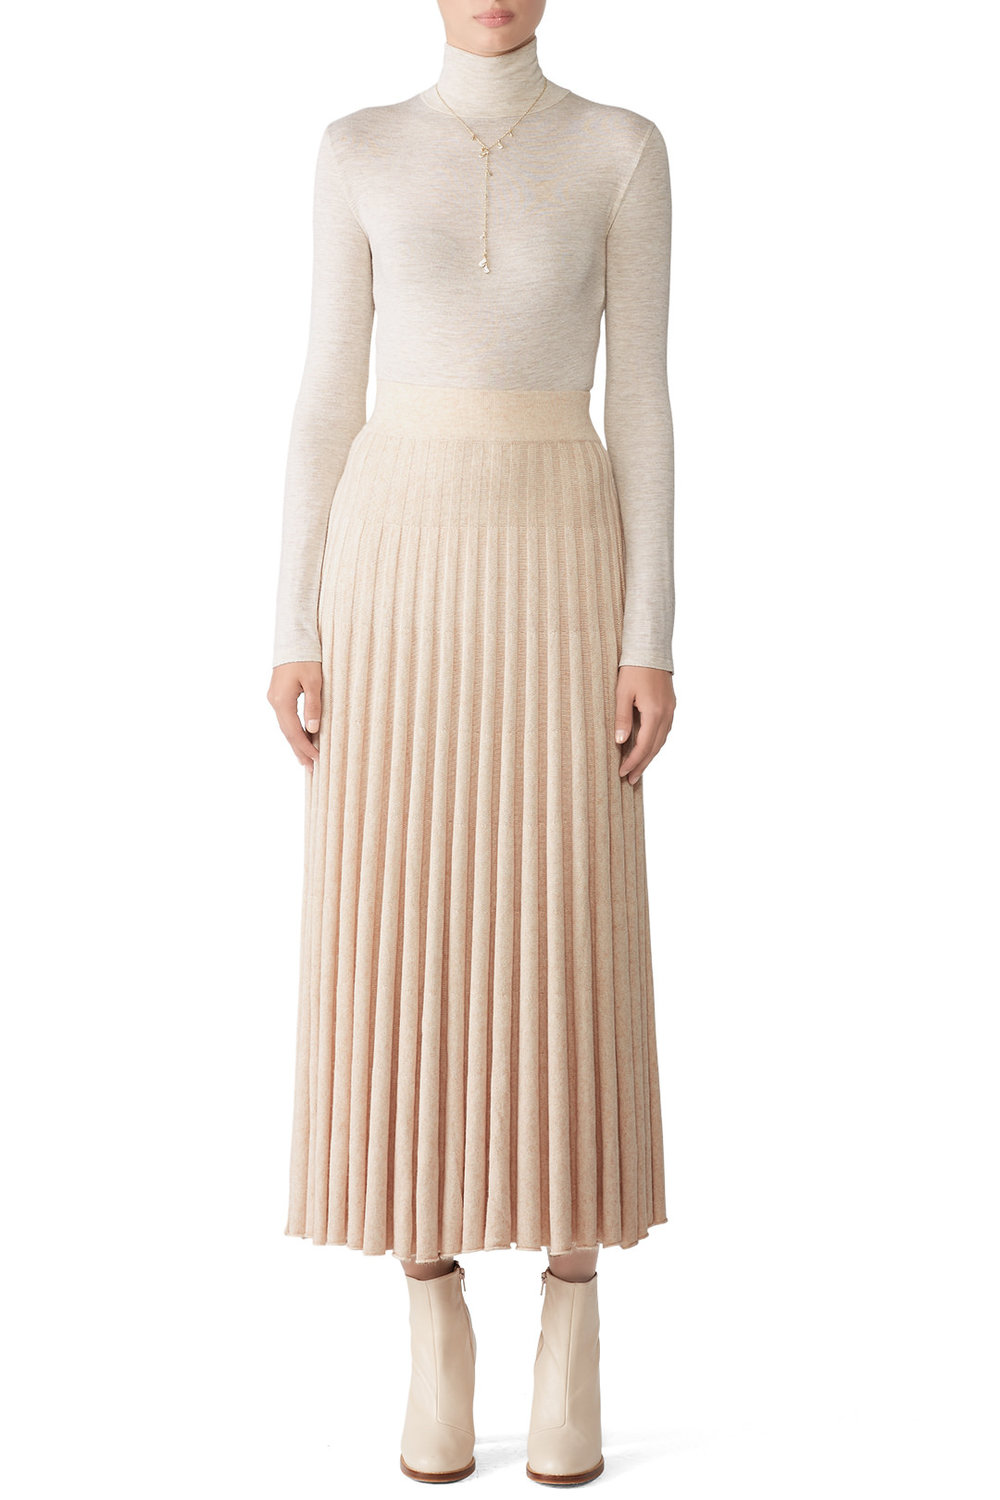 CAARA Gala Crème Pleated Skirt - Great staple skirt. Plus it goes down to your ankles so you know you're not offending your stuffy relatives